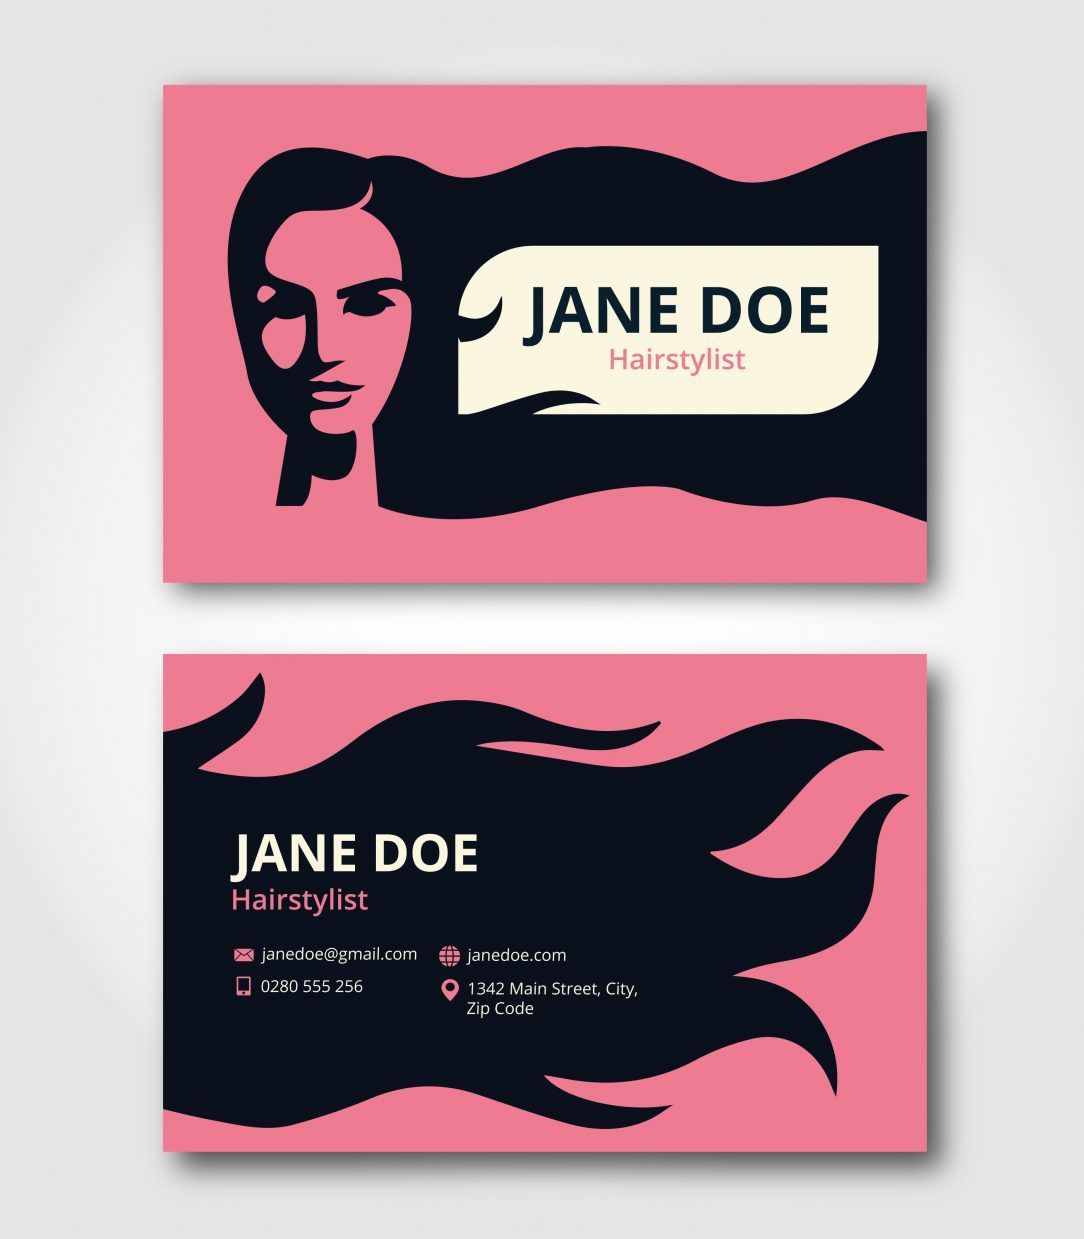 Black hair stylist business cards creative professional